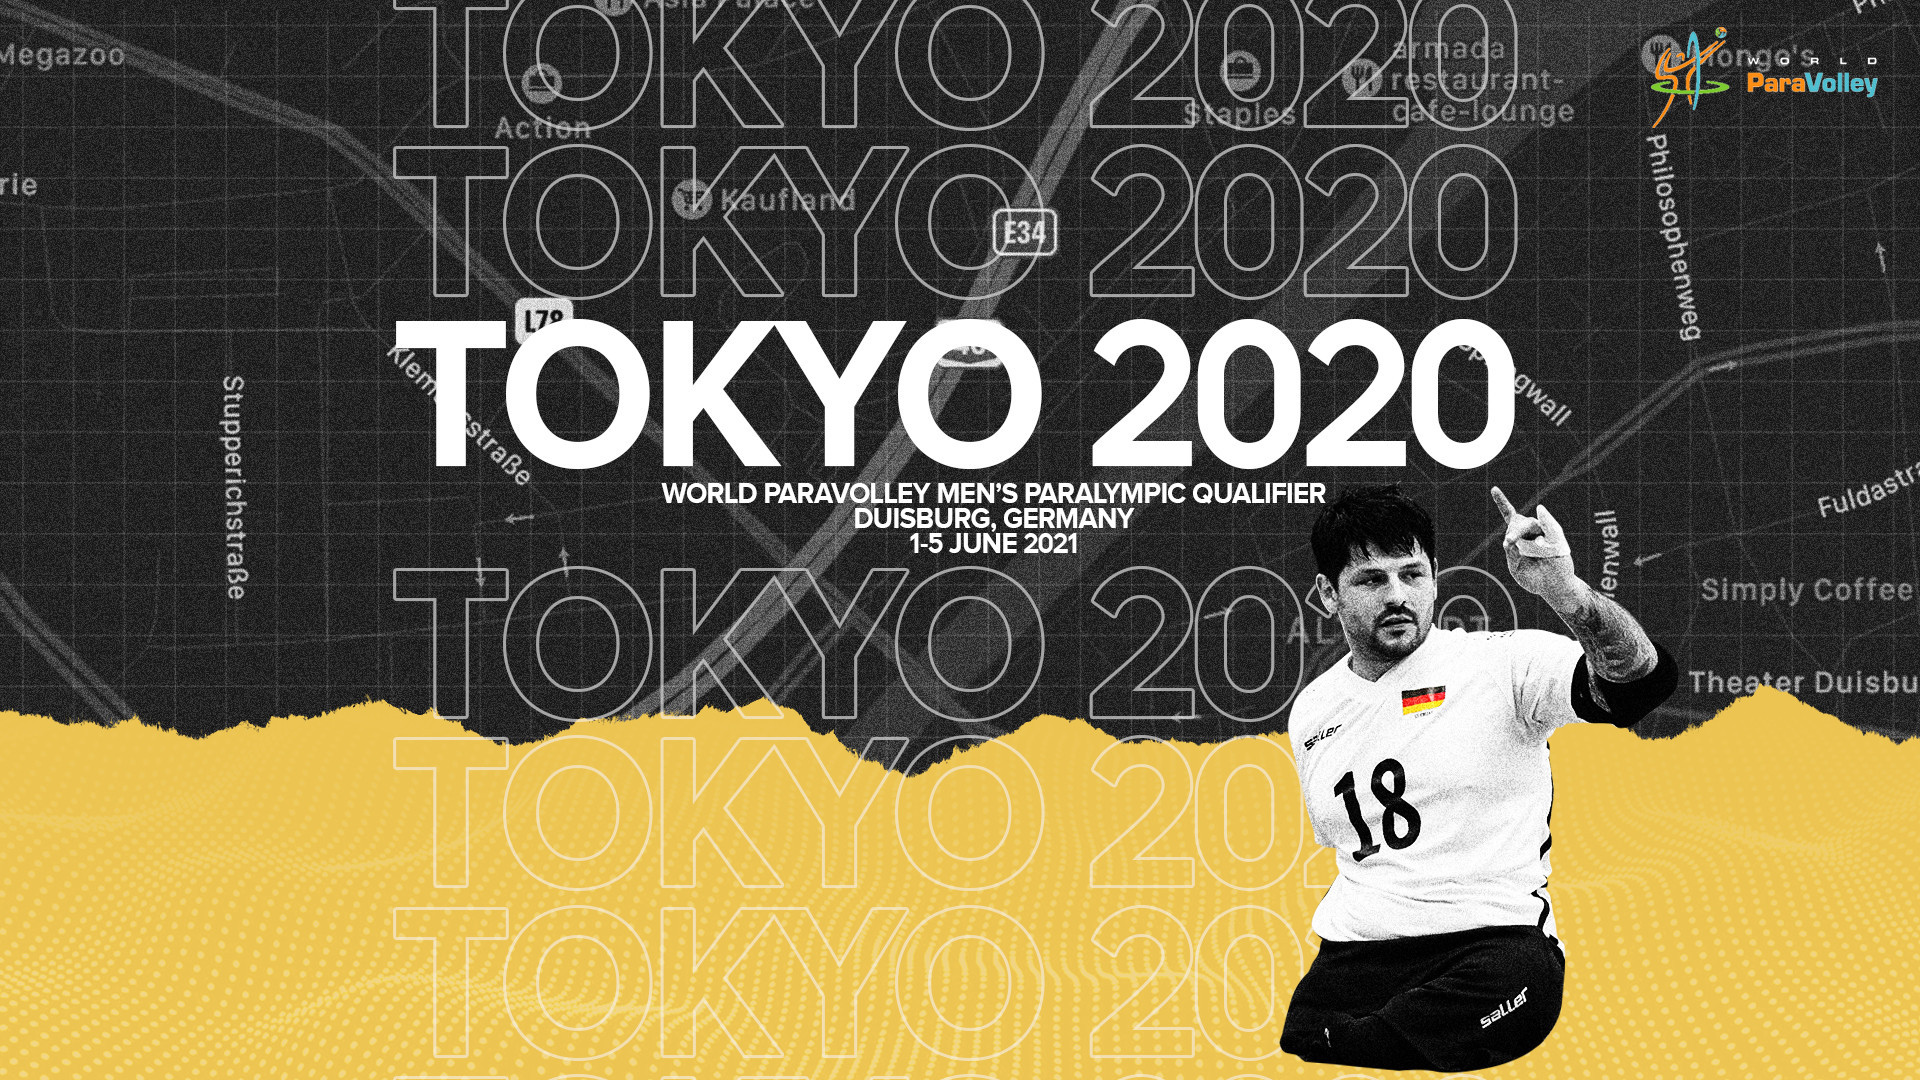 World ParaVolley confirms pools for final Tokyo 2020 sitting volleyball qualifier